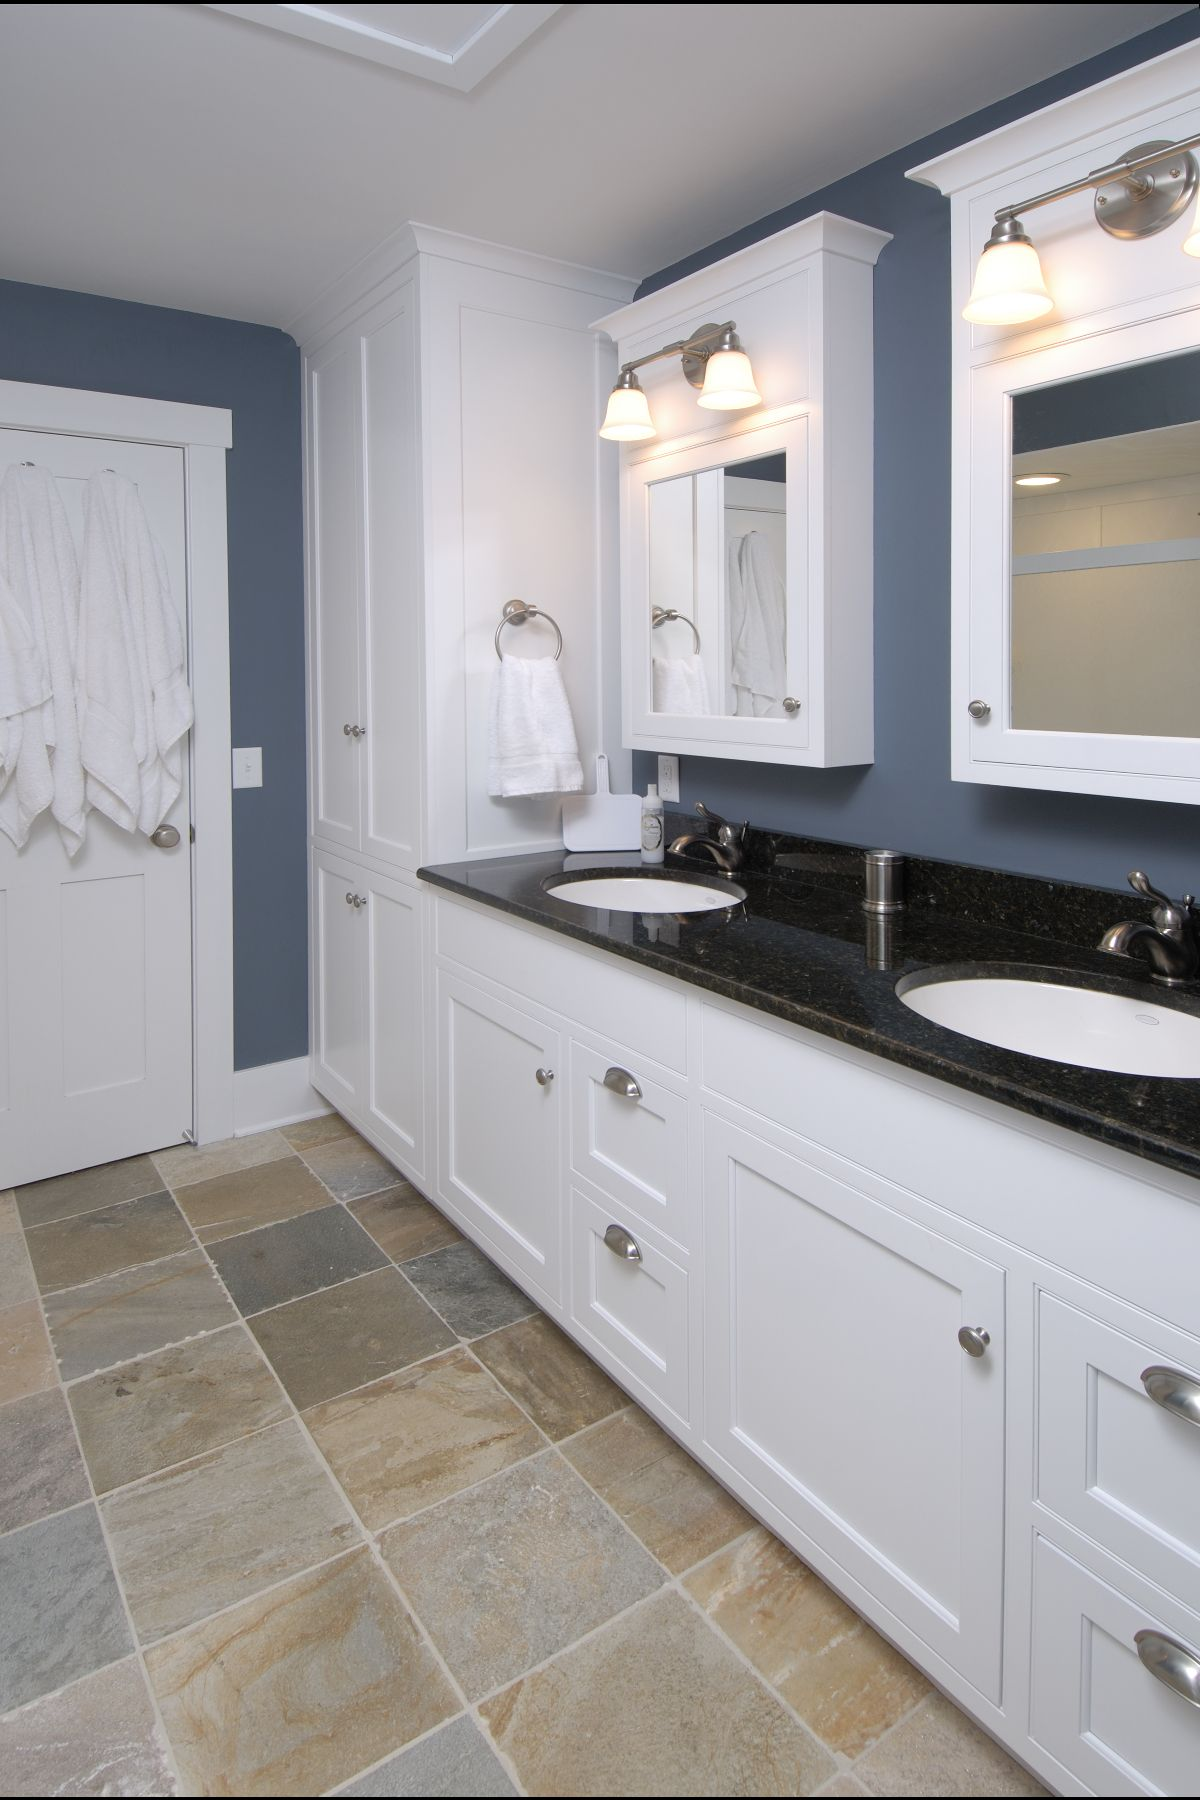 bathroom remodel completed by dehaan remodeling specialists inc - Bathroom Remodel Kalamazoo